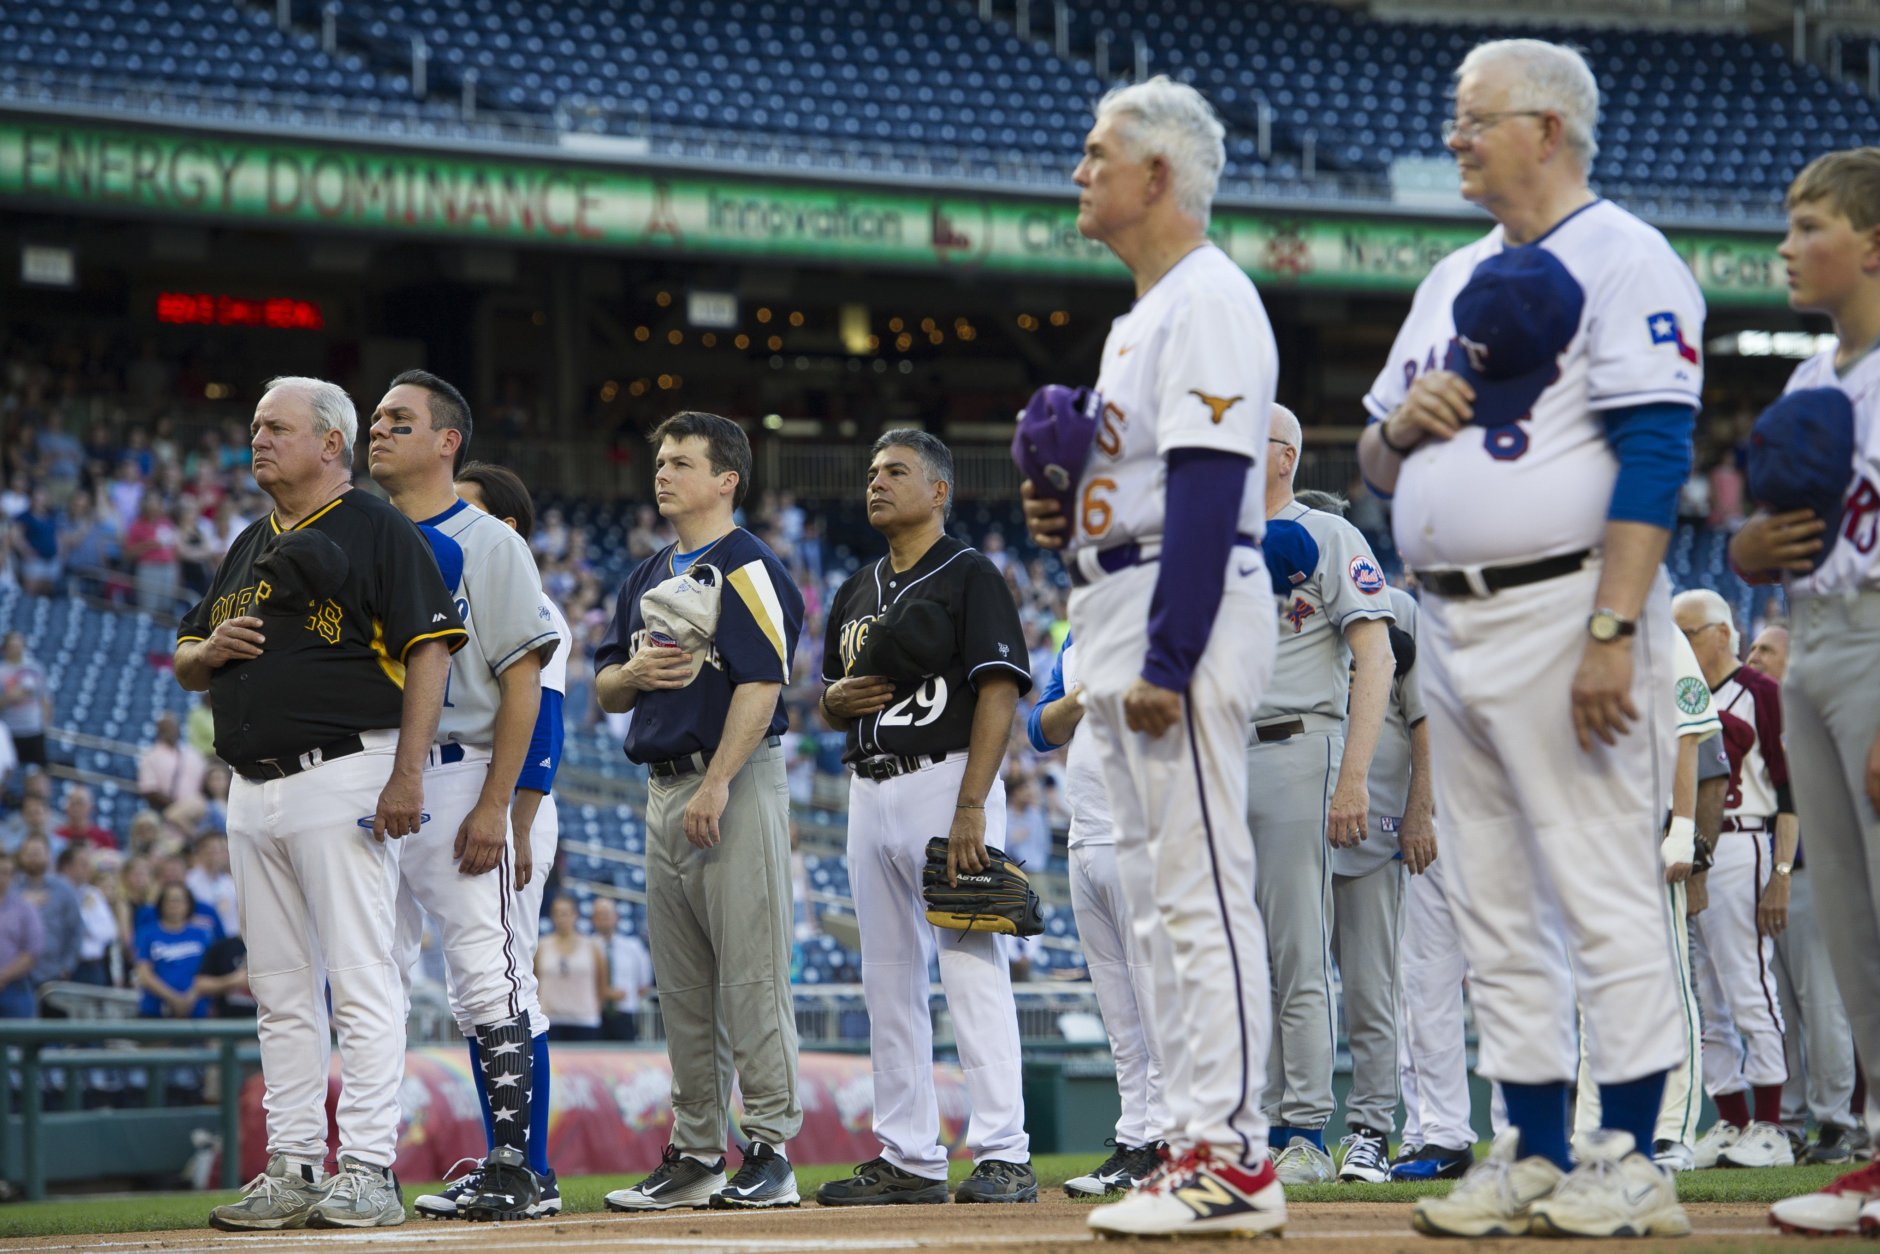 Members of the Democratic and Republican baseball teams stand for the national anthem to start the 57th Congressional Baseball Game at National's Park in Washington, Thursday, June 14, 2018. On June 14, 2017, some Congressional members were victims of a shooting at the baseball field they were practicing on in Alexandria, Va. (AP Photo/Cliff Owen)